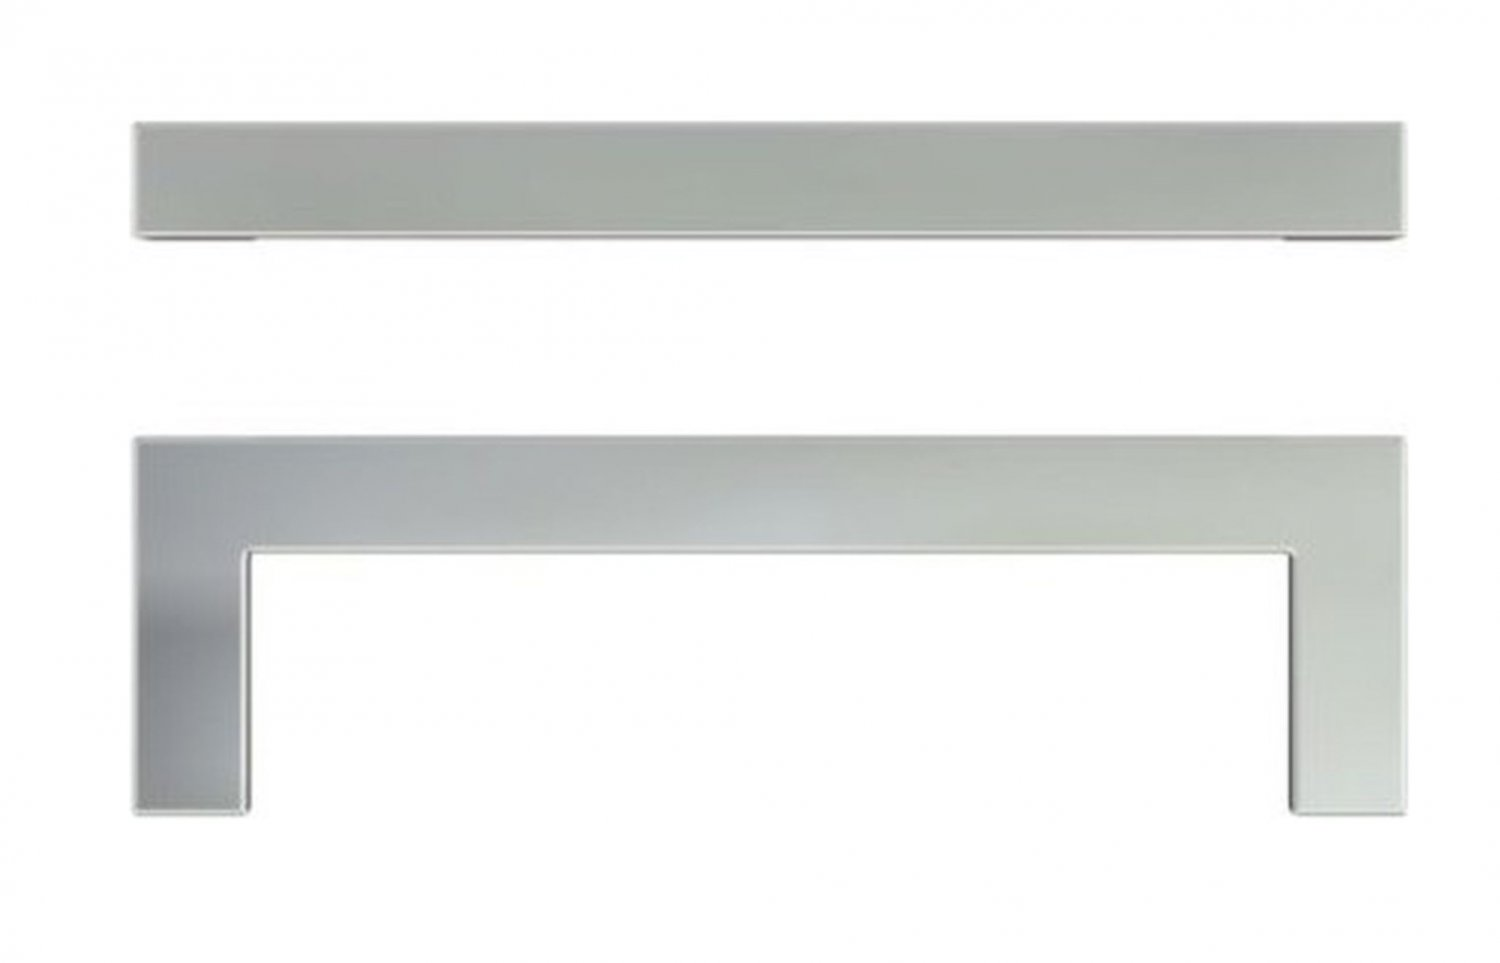 Ikea Kitchen Cabinet Child Locks Ikea Metrik Drawer Handles Cabinet Pulls Stainless Steel